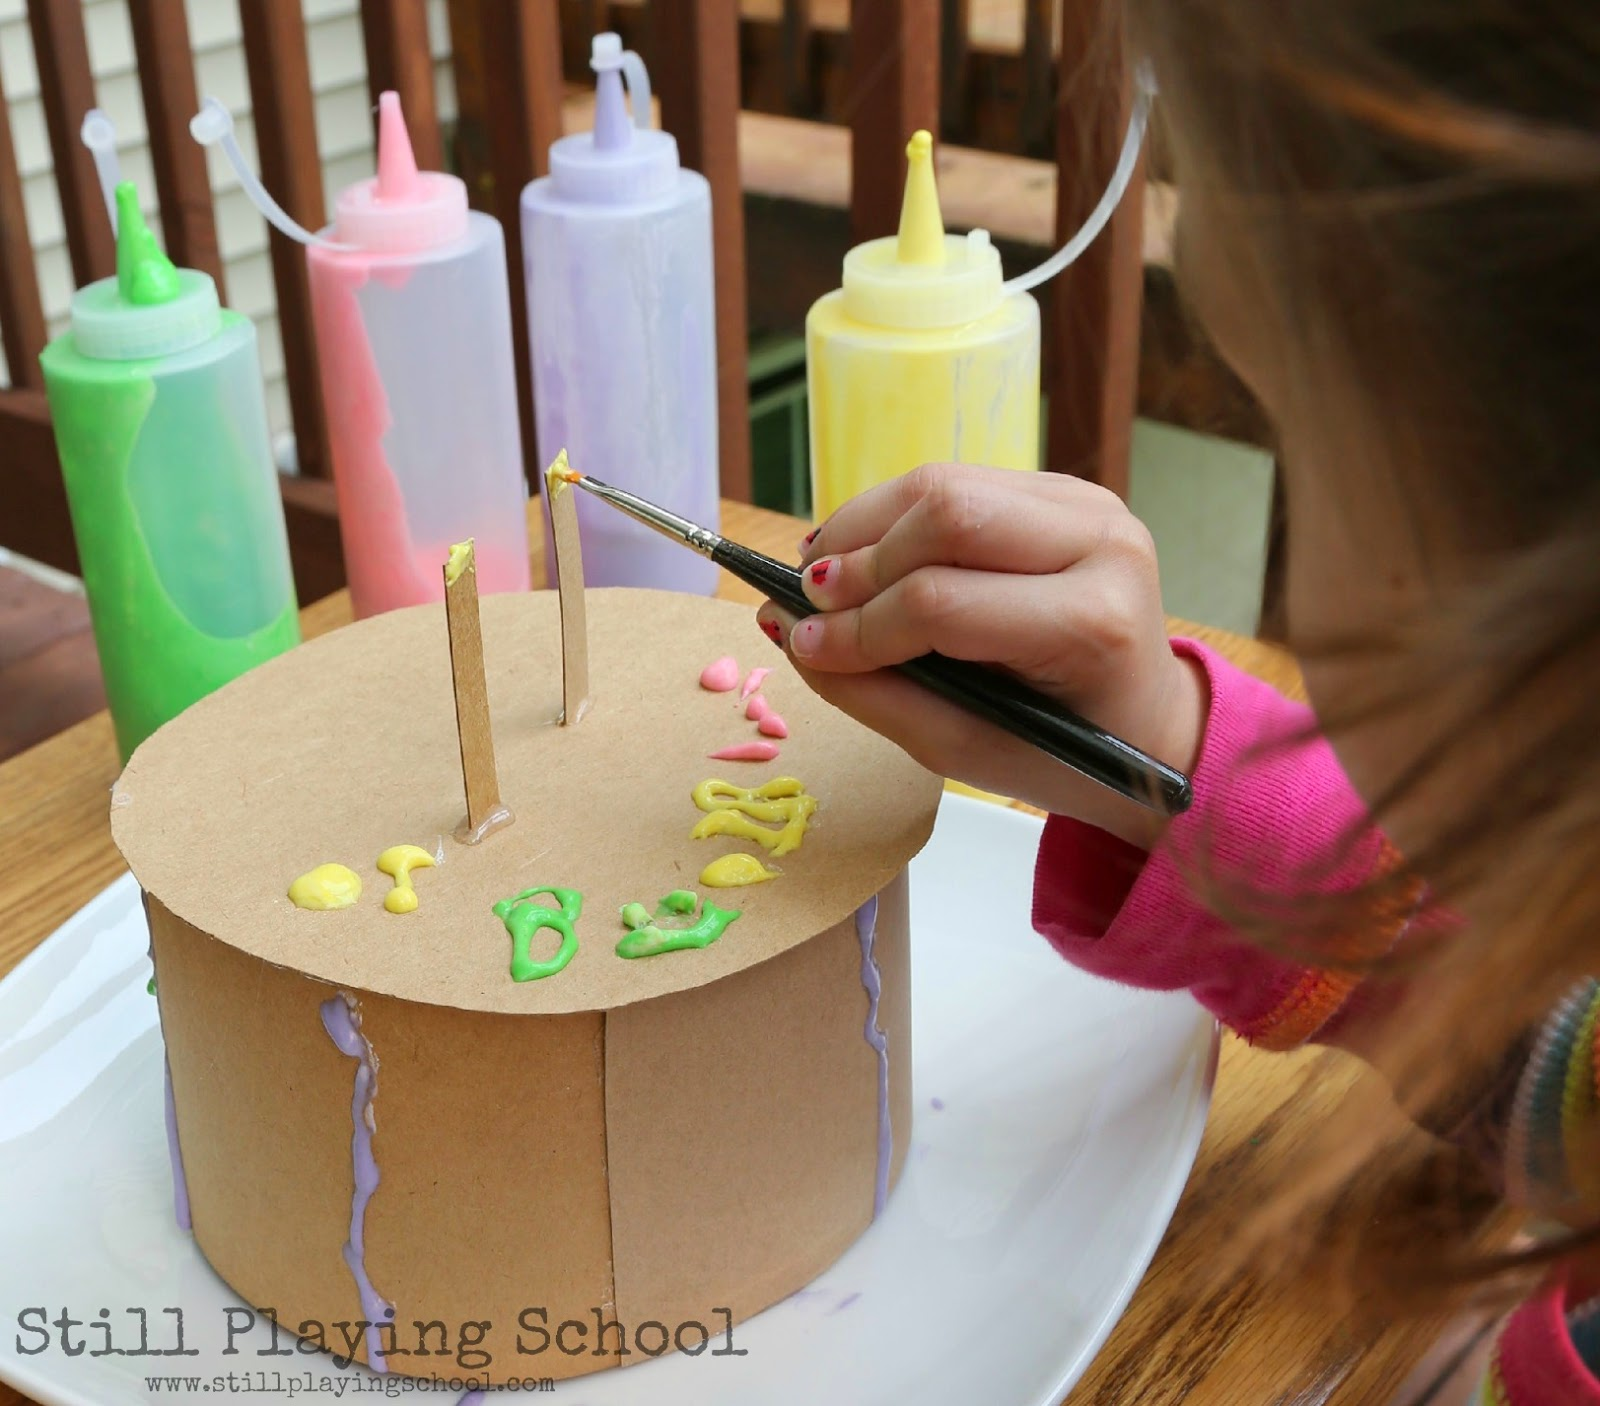 Puffy Paint Cake Decorating Still Playing School